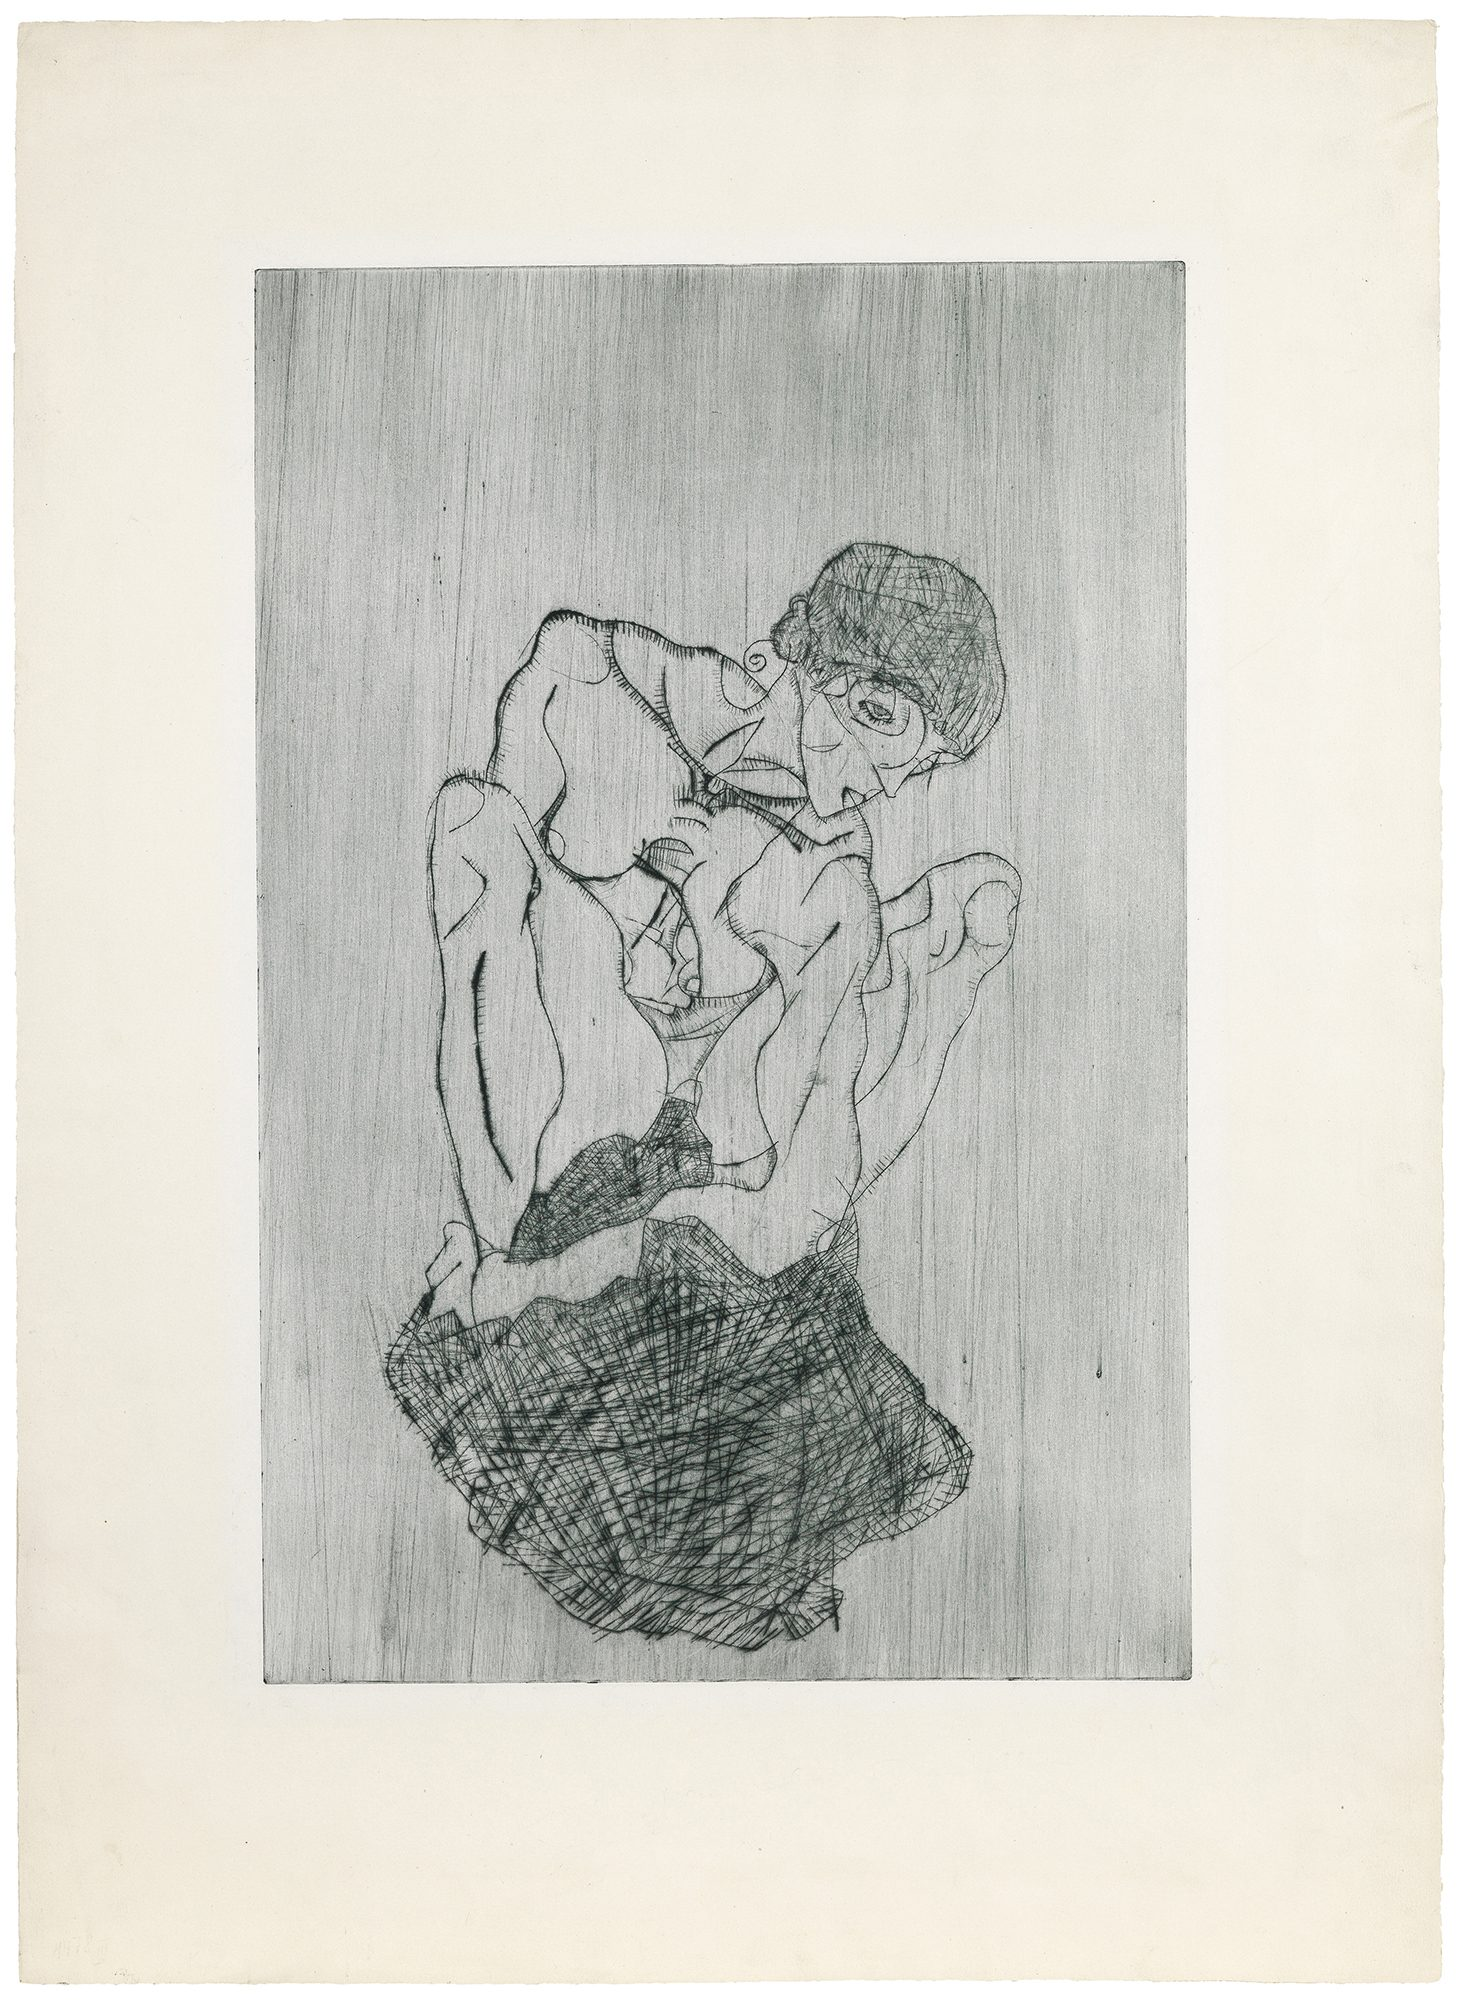 Egon Schiele (Austrian, 1890–1918) Kümmernis (Sorrow), 1914. Etching, 20 x 13 in. Gift of Madeleine P. and Harvey R. Plonsker, Class of 1961, M.2015.25.2